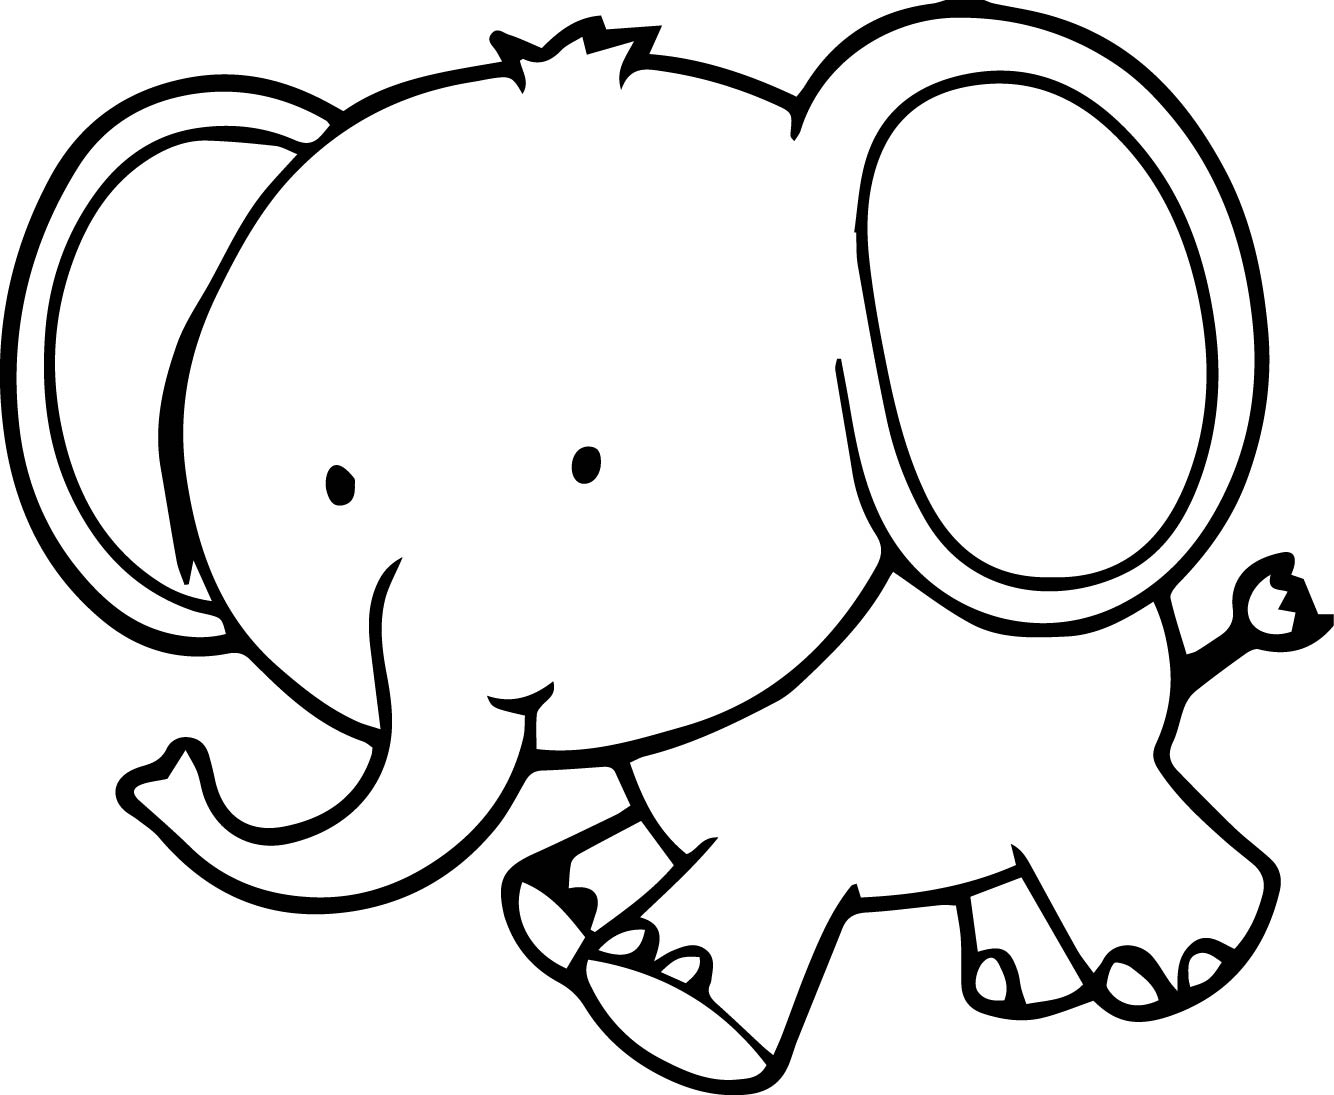 elephant coloring cartoon elephant coloring pages at getcoloringscom free coloring elephant